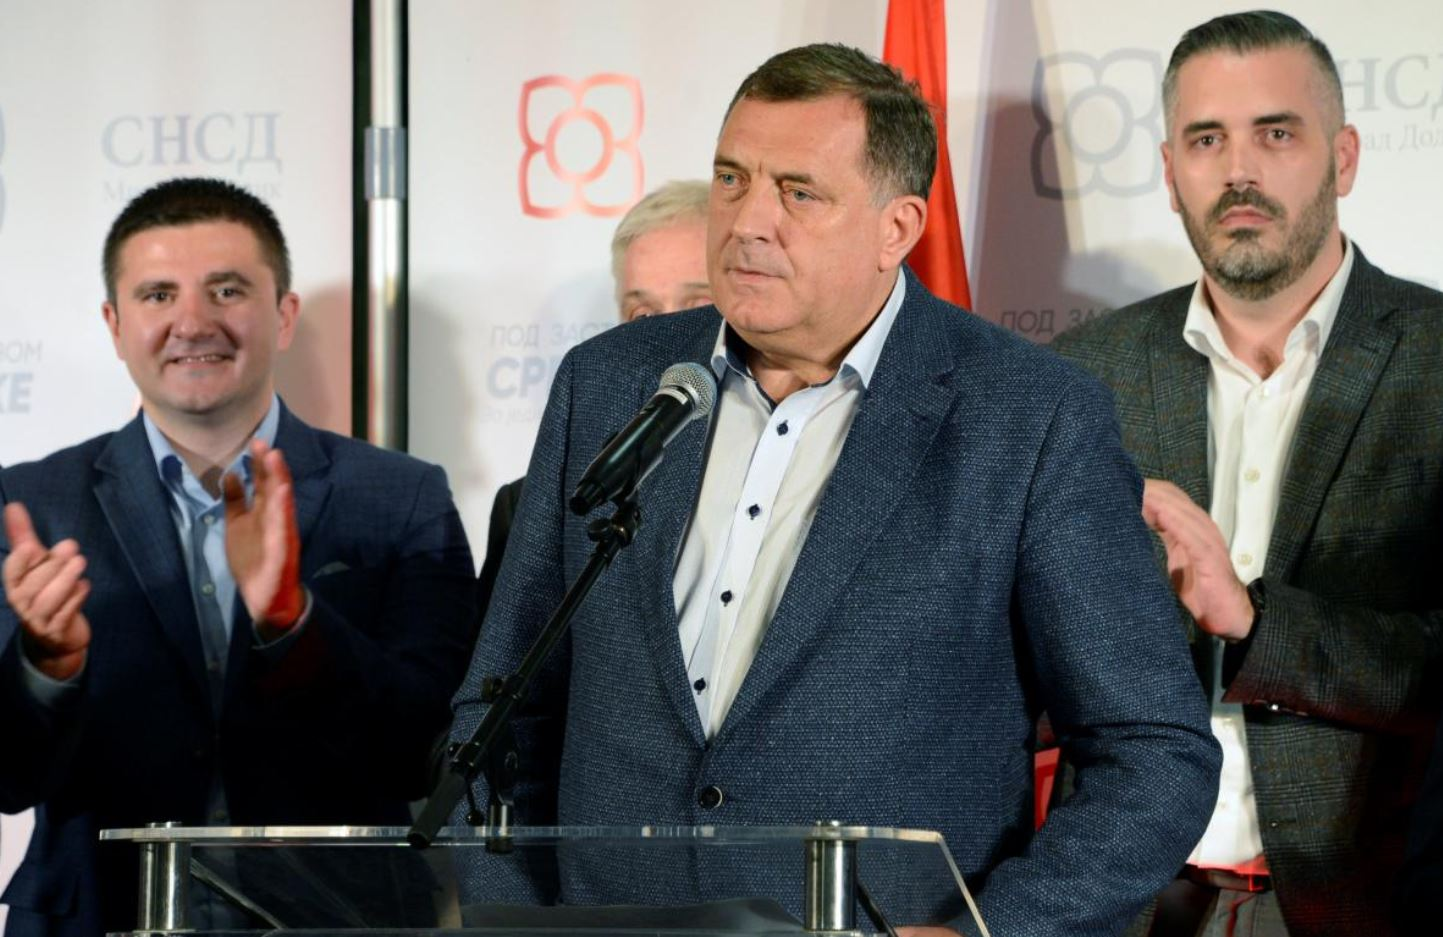 Nationalist parties win Bosnia's parliamentary vote, preliminary results show